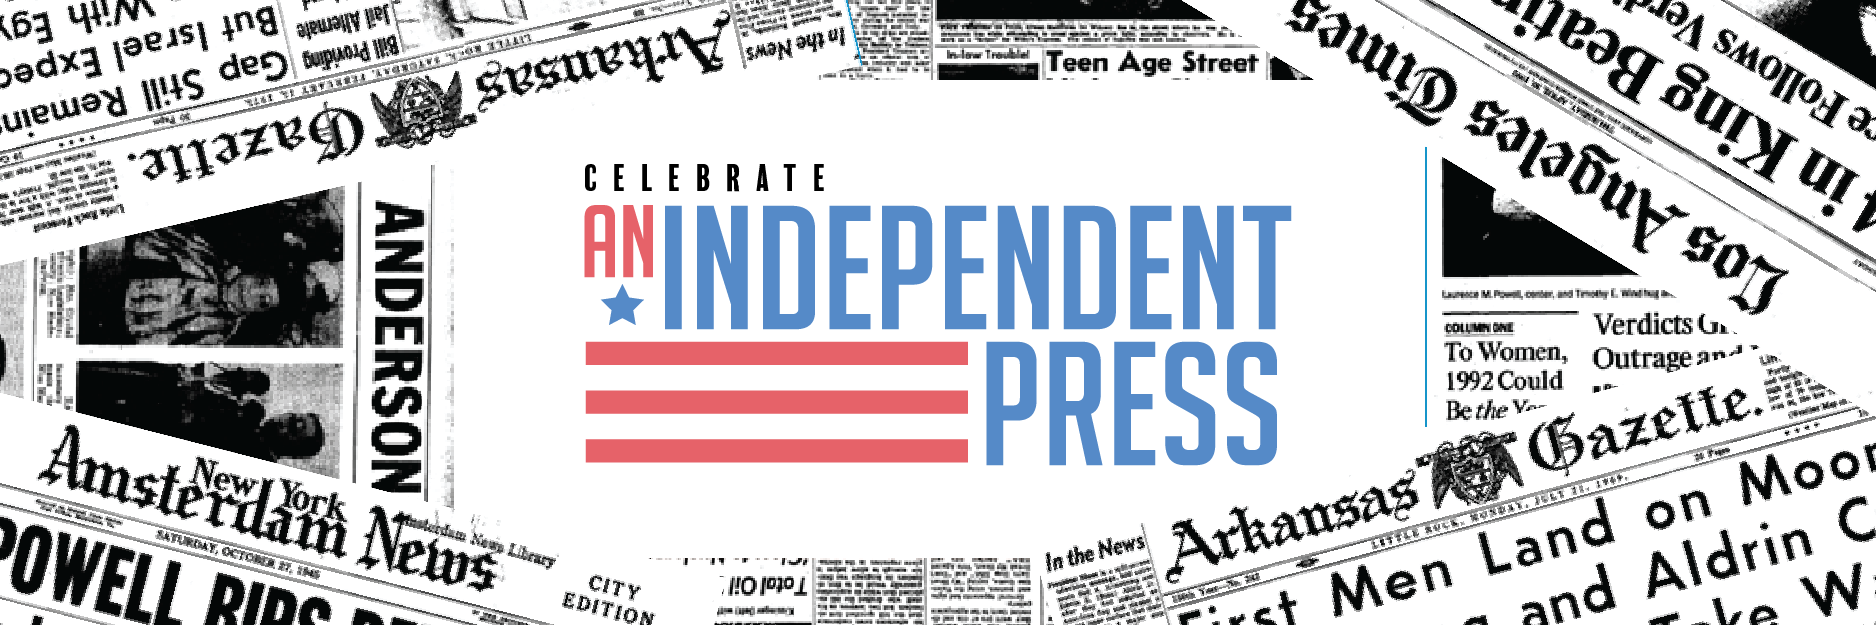 Celebrate the Fourth Estate with these new newspaper archives